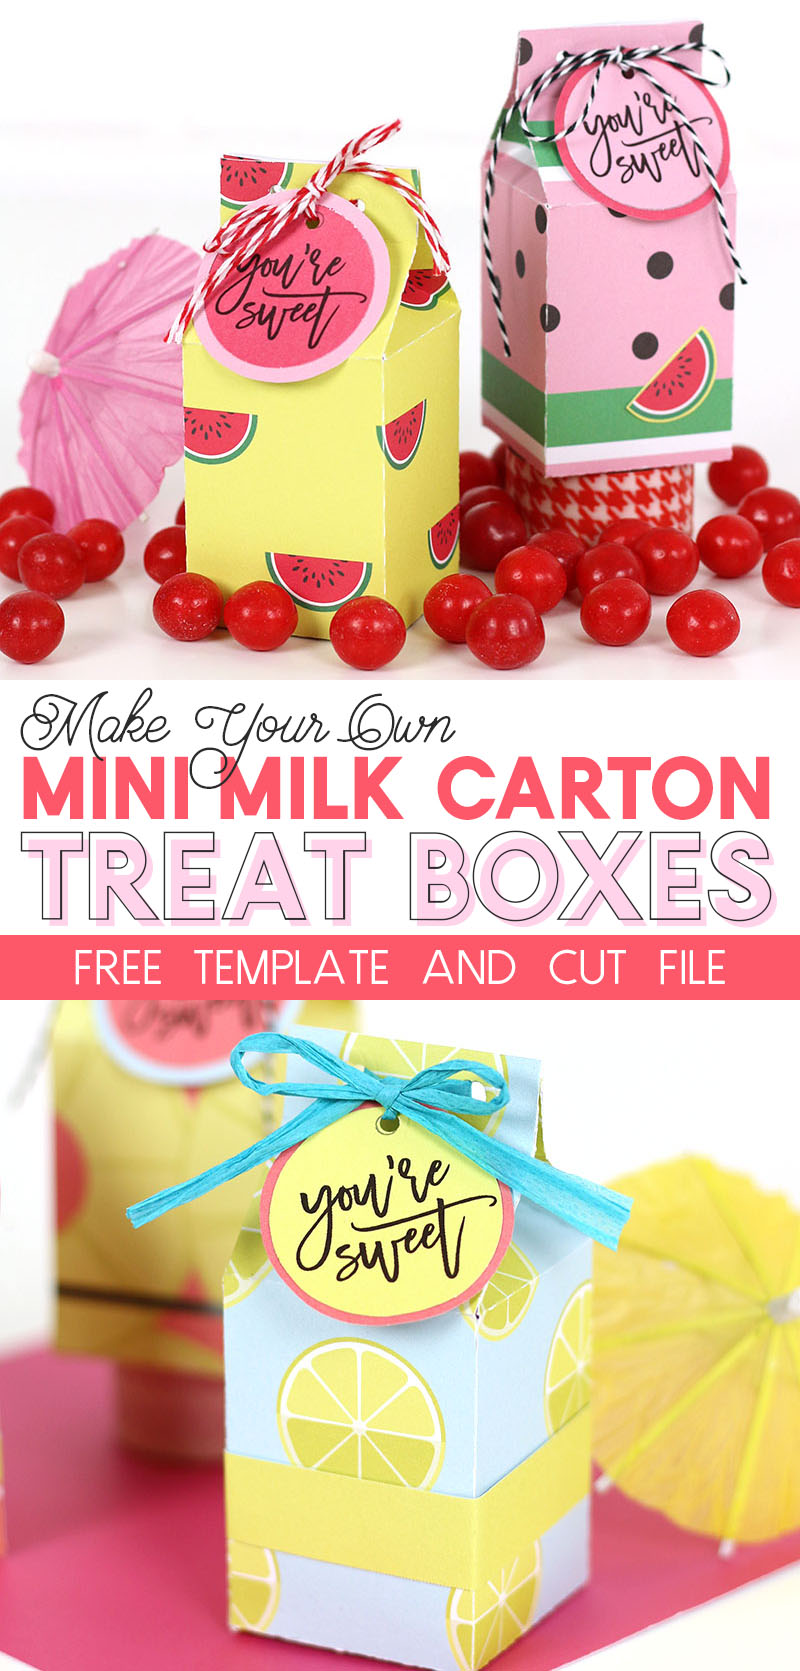 make your own mini milk carton treat boxes with this free template and cut file - perfect party favor box